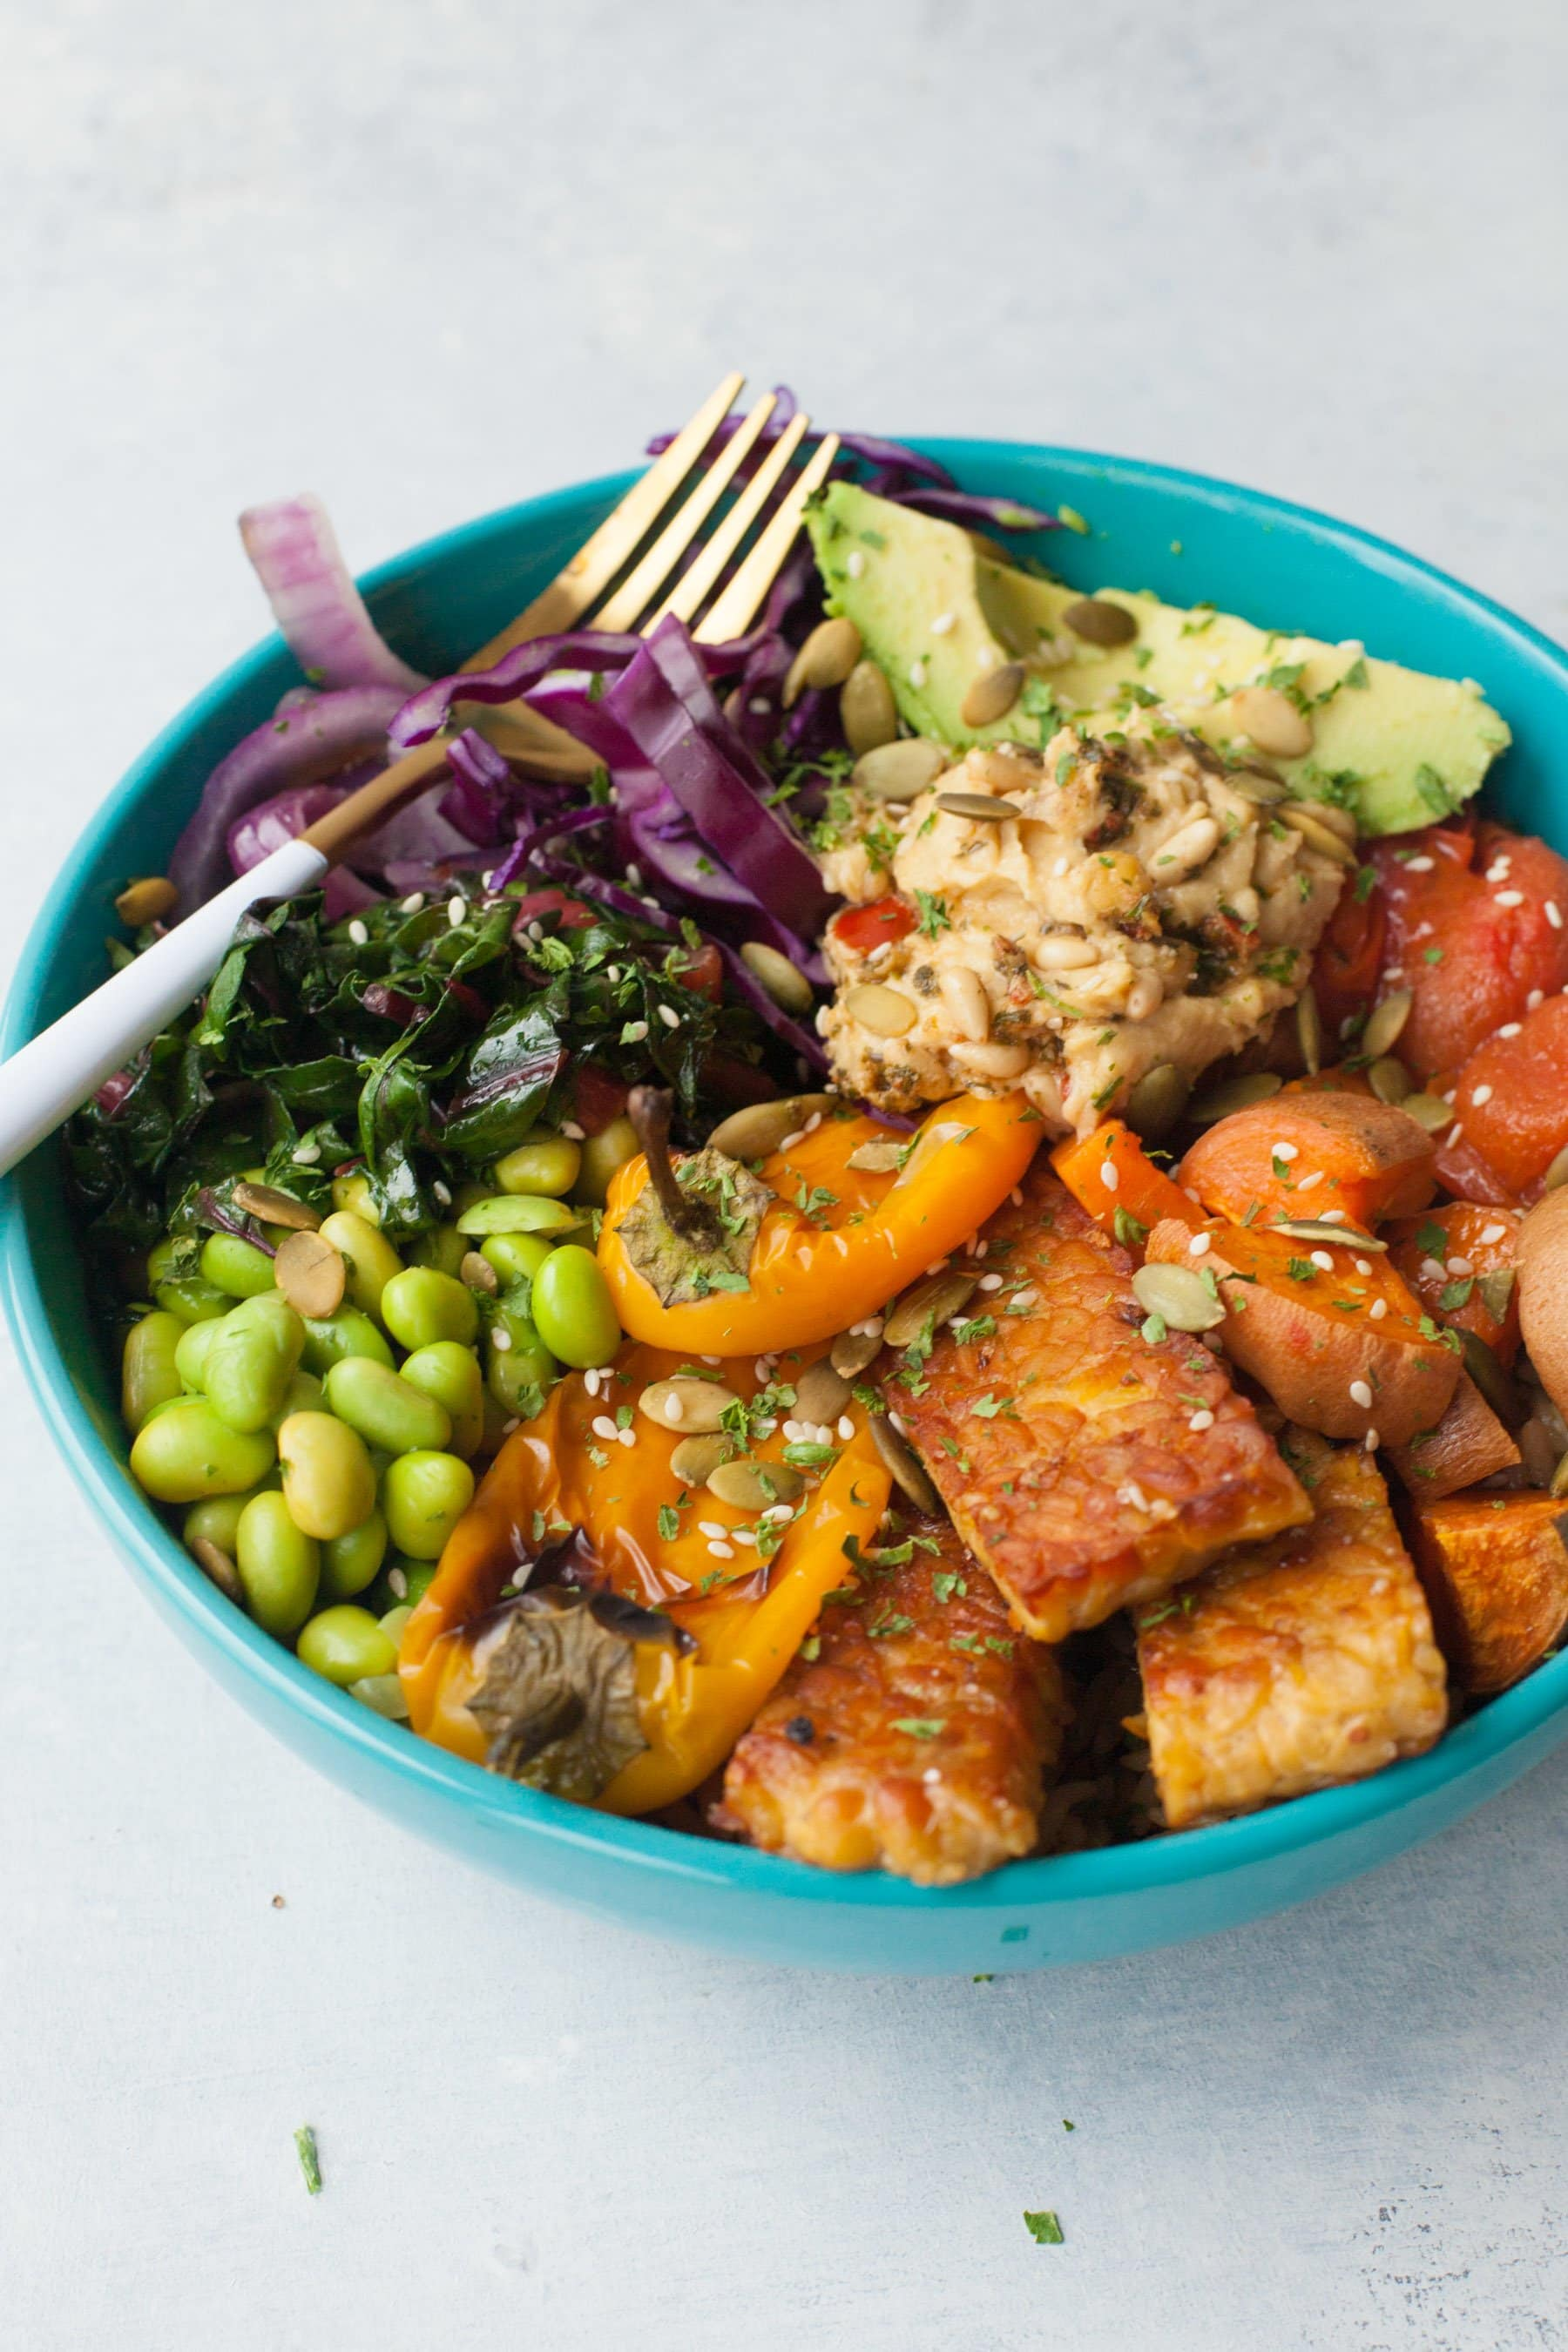 How to Make Awesome Grain Bowls